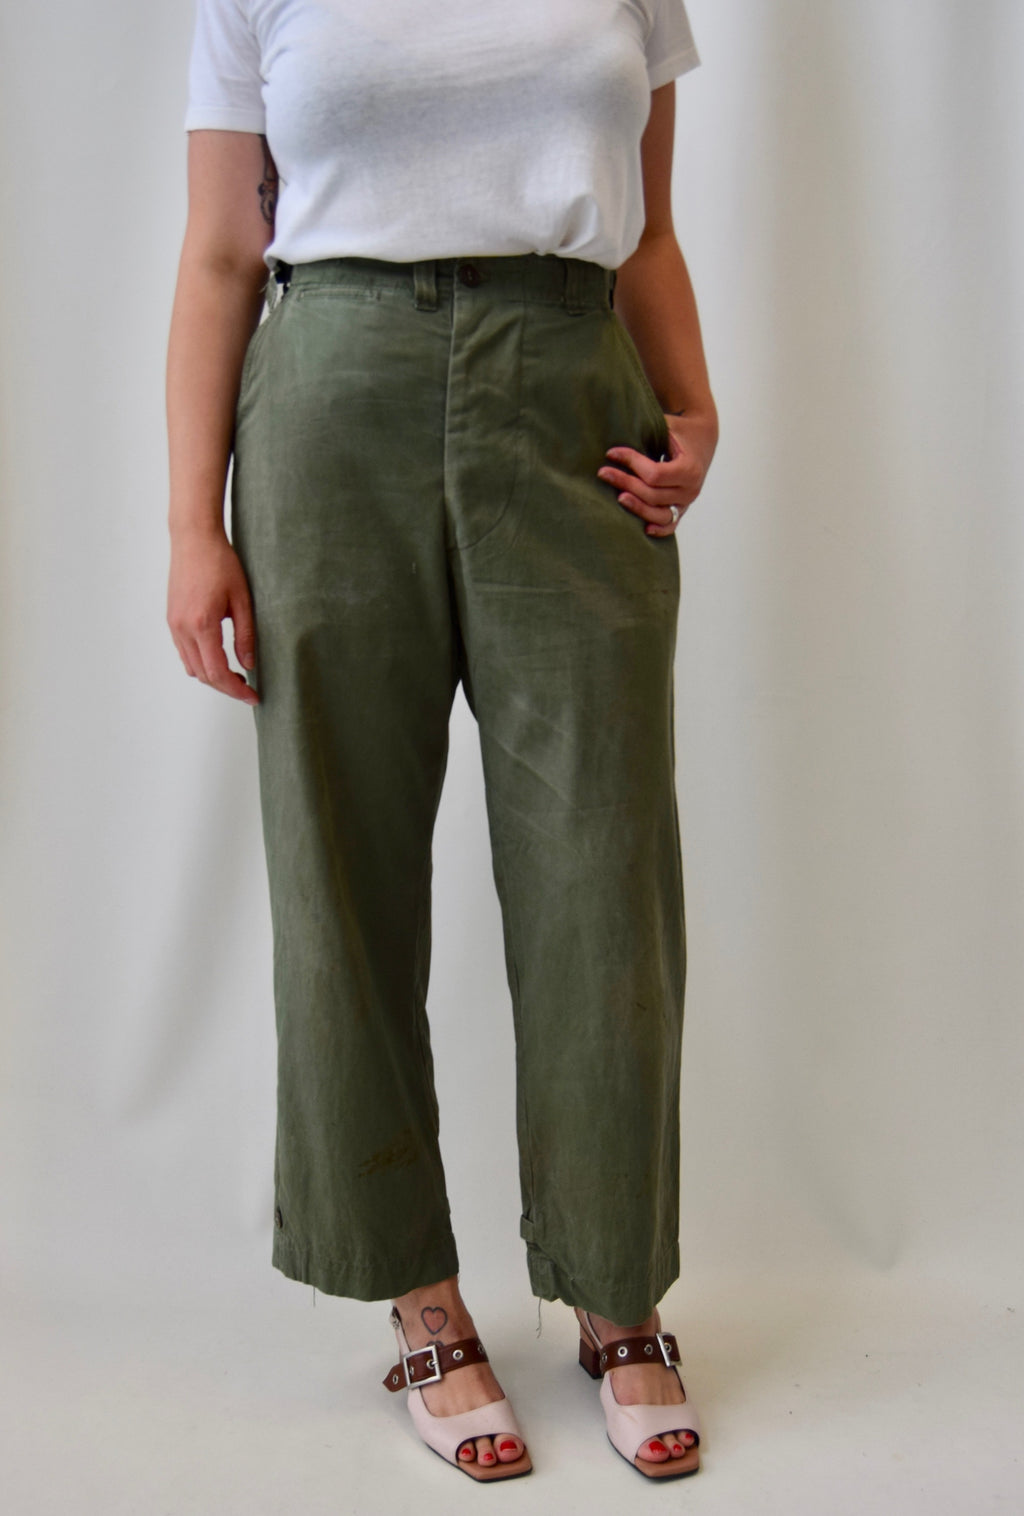 1961 Olive Military Field Trousers